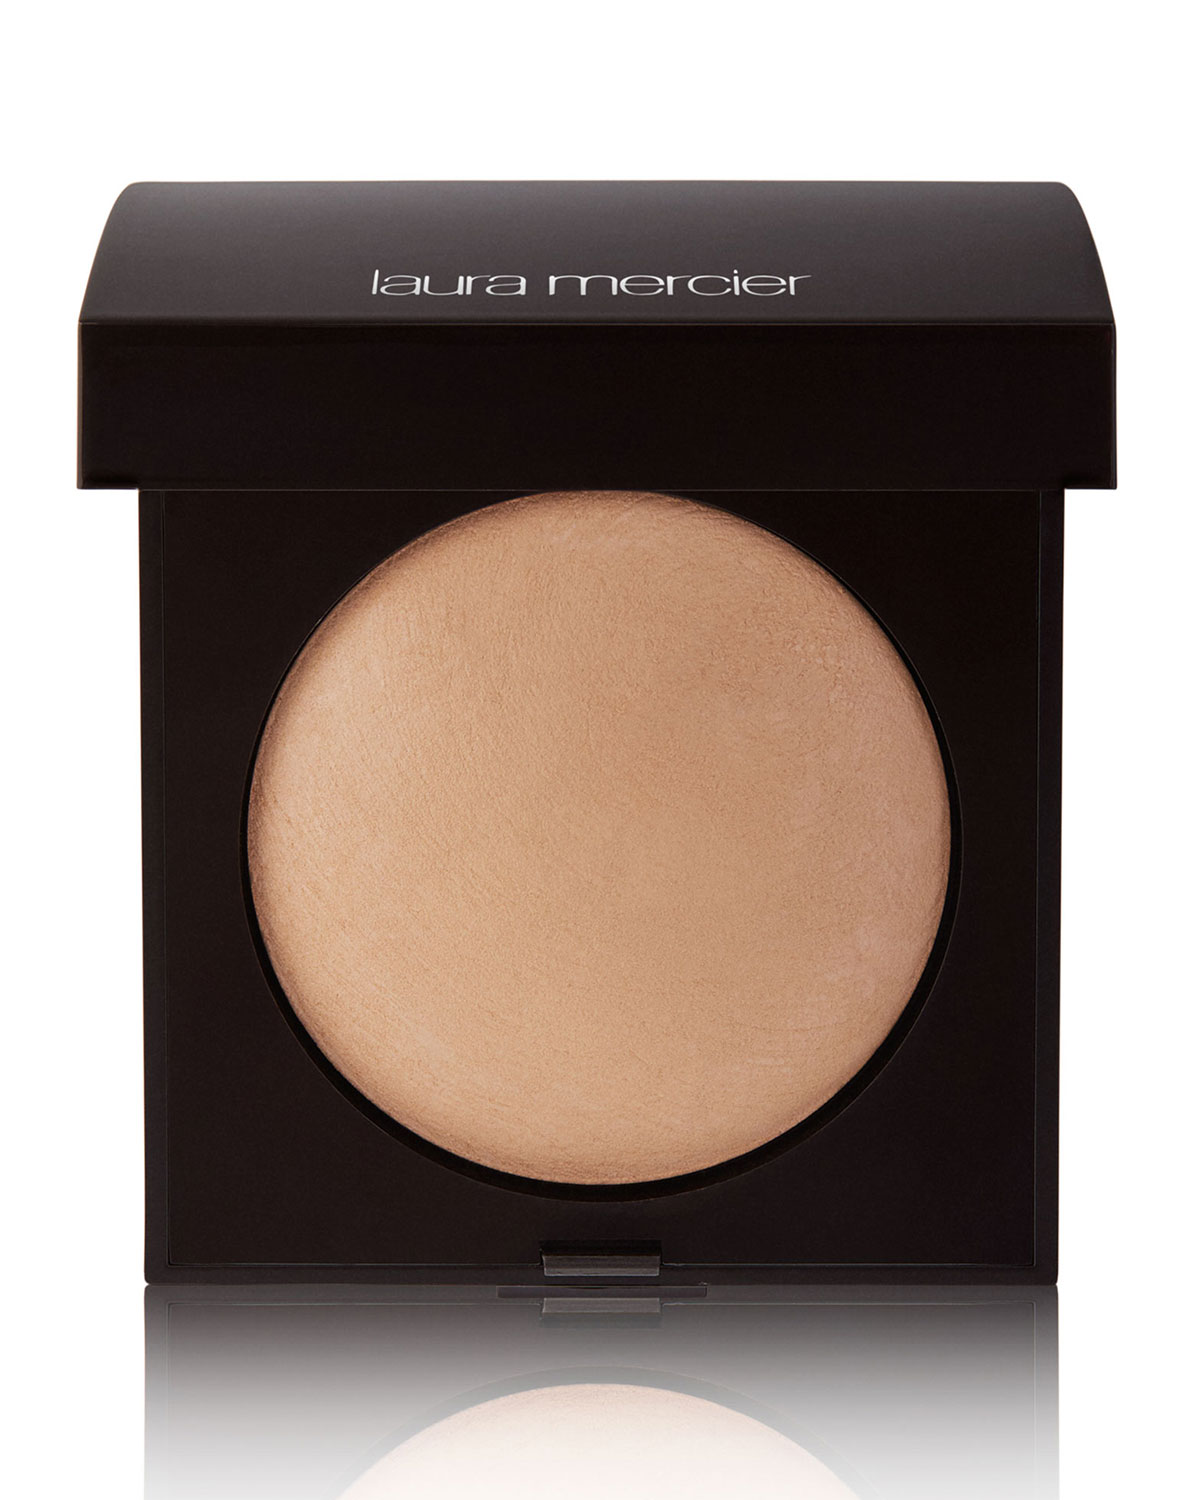 Matte Radiance Baked Powder Bronzer, Bronze 01 - Laura Mercier